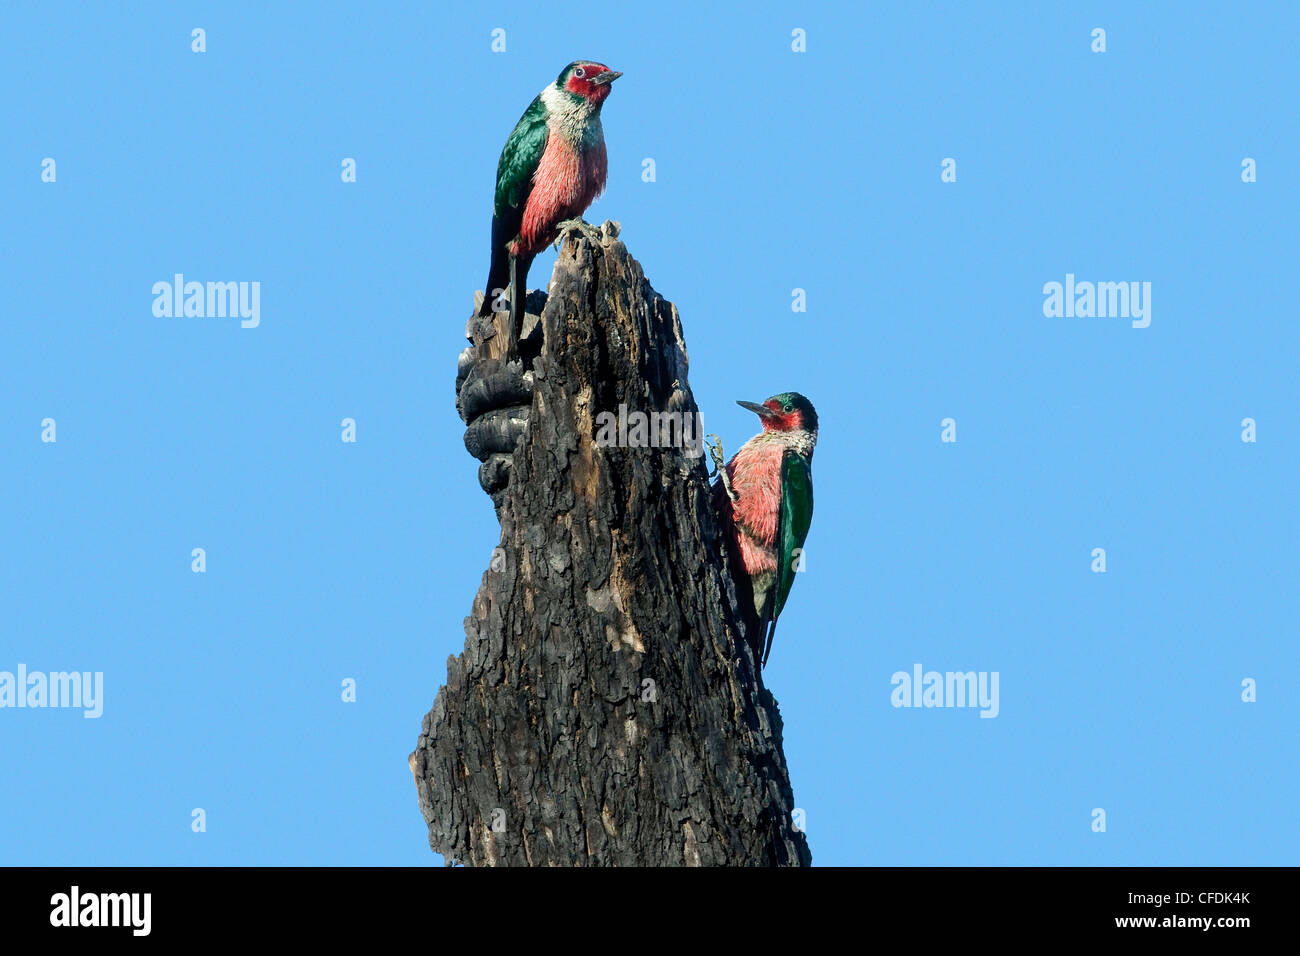 Lewis's woodpeckers (Melanerpes lewis), Okanagan Valley, southern Britsih Columbia, Canada - Stock Image